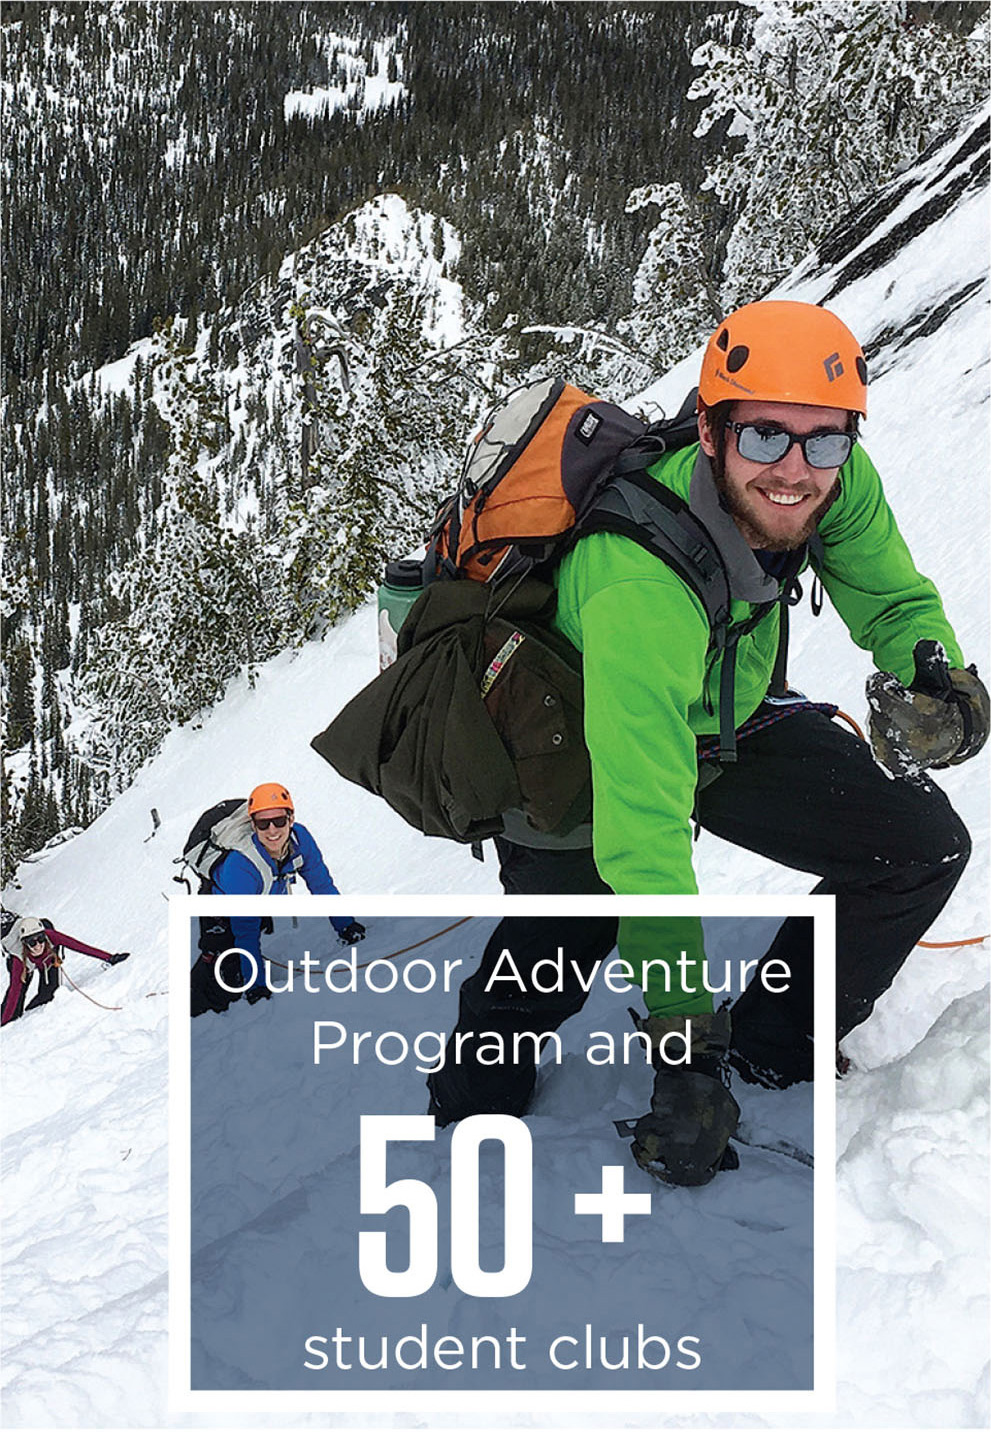 EOU has 50+ Student Clubs, including the Outdoor Program